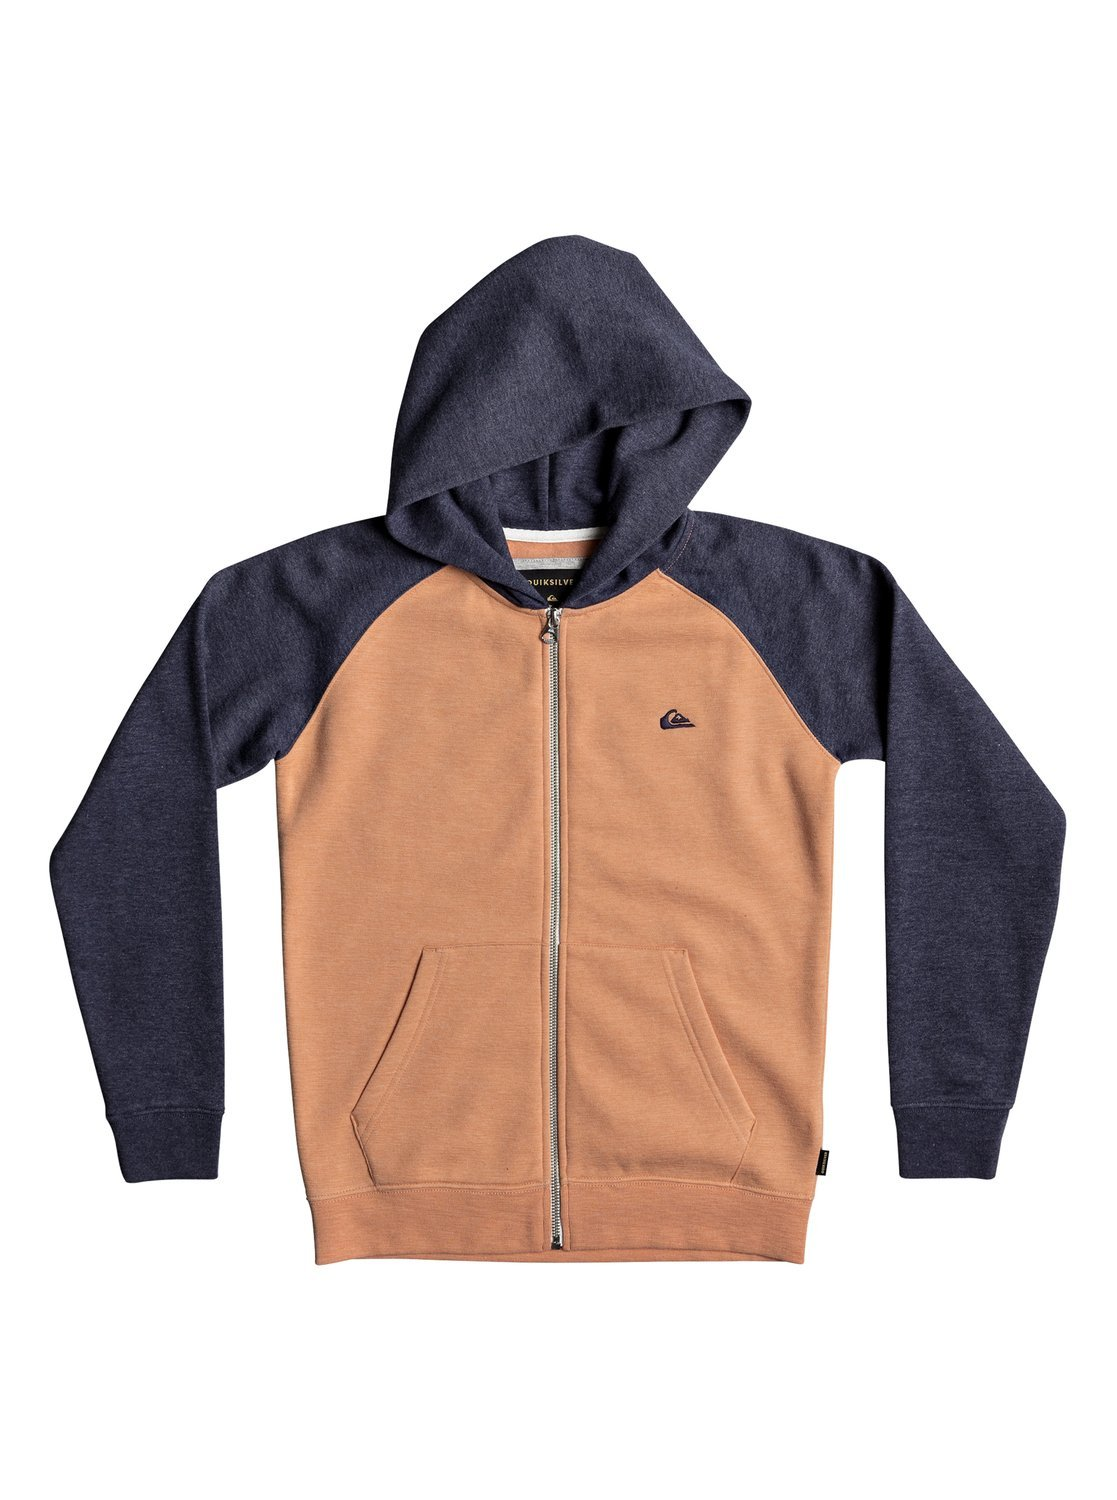 Quiksilver Everyday felpe Na Pali EQBFT03394